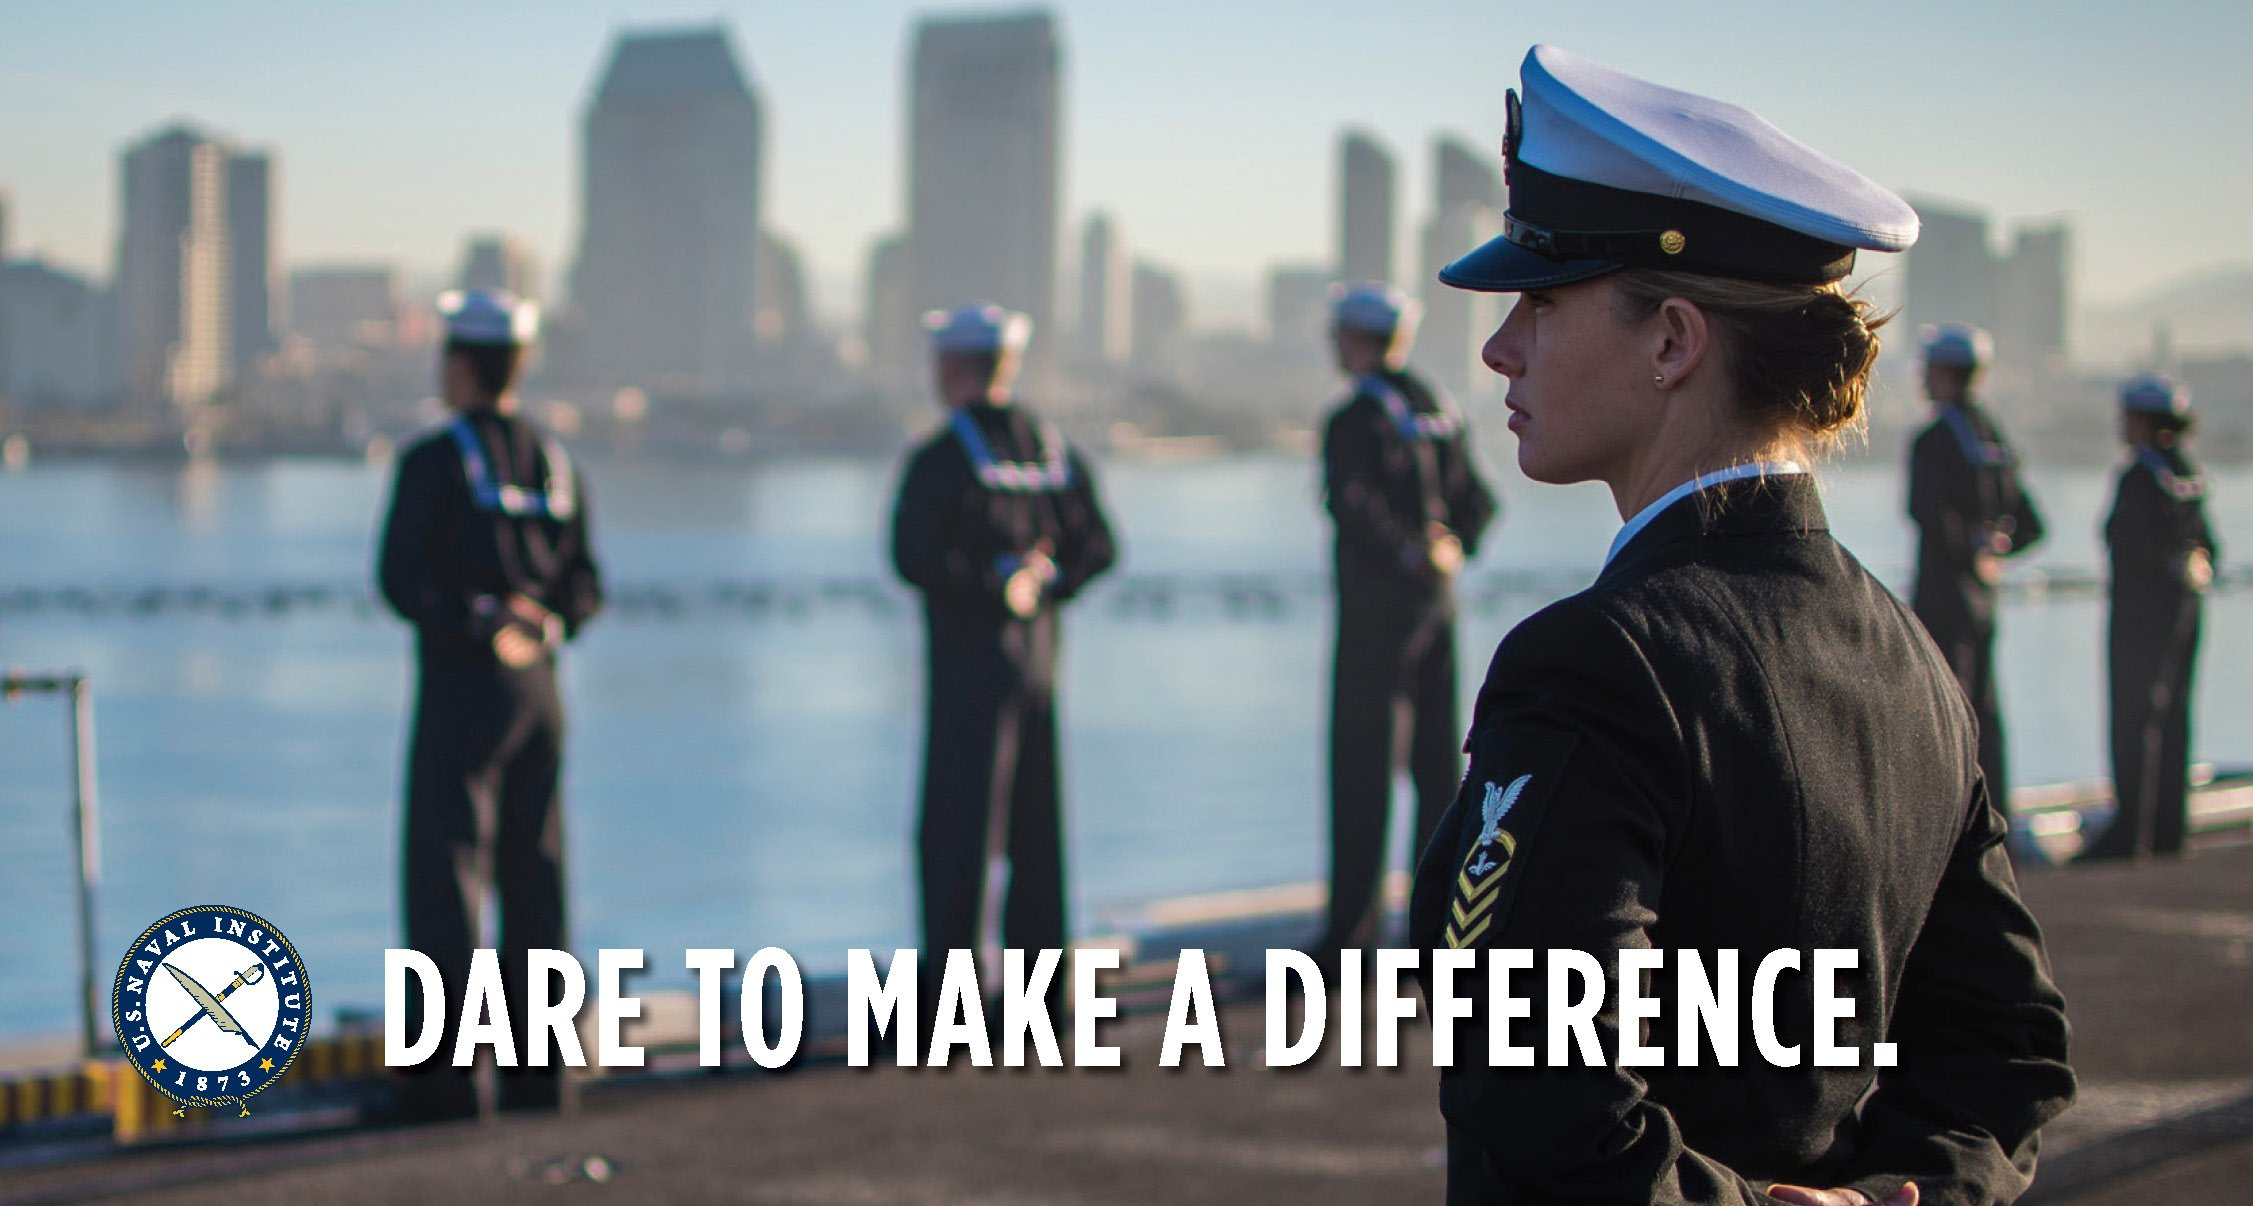 Dare to Make a Difference